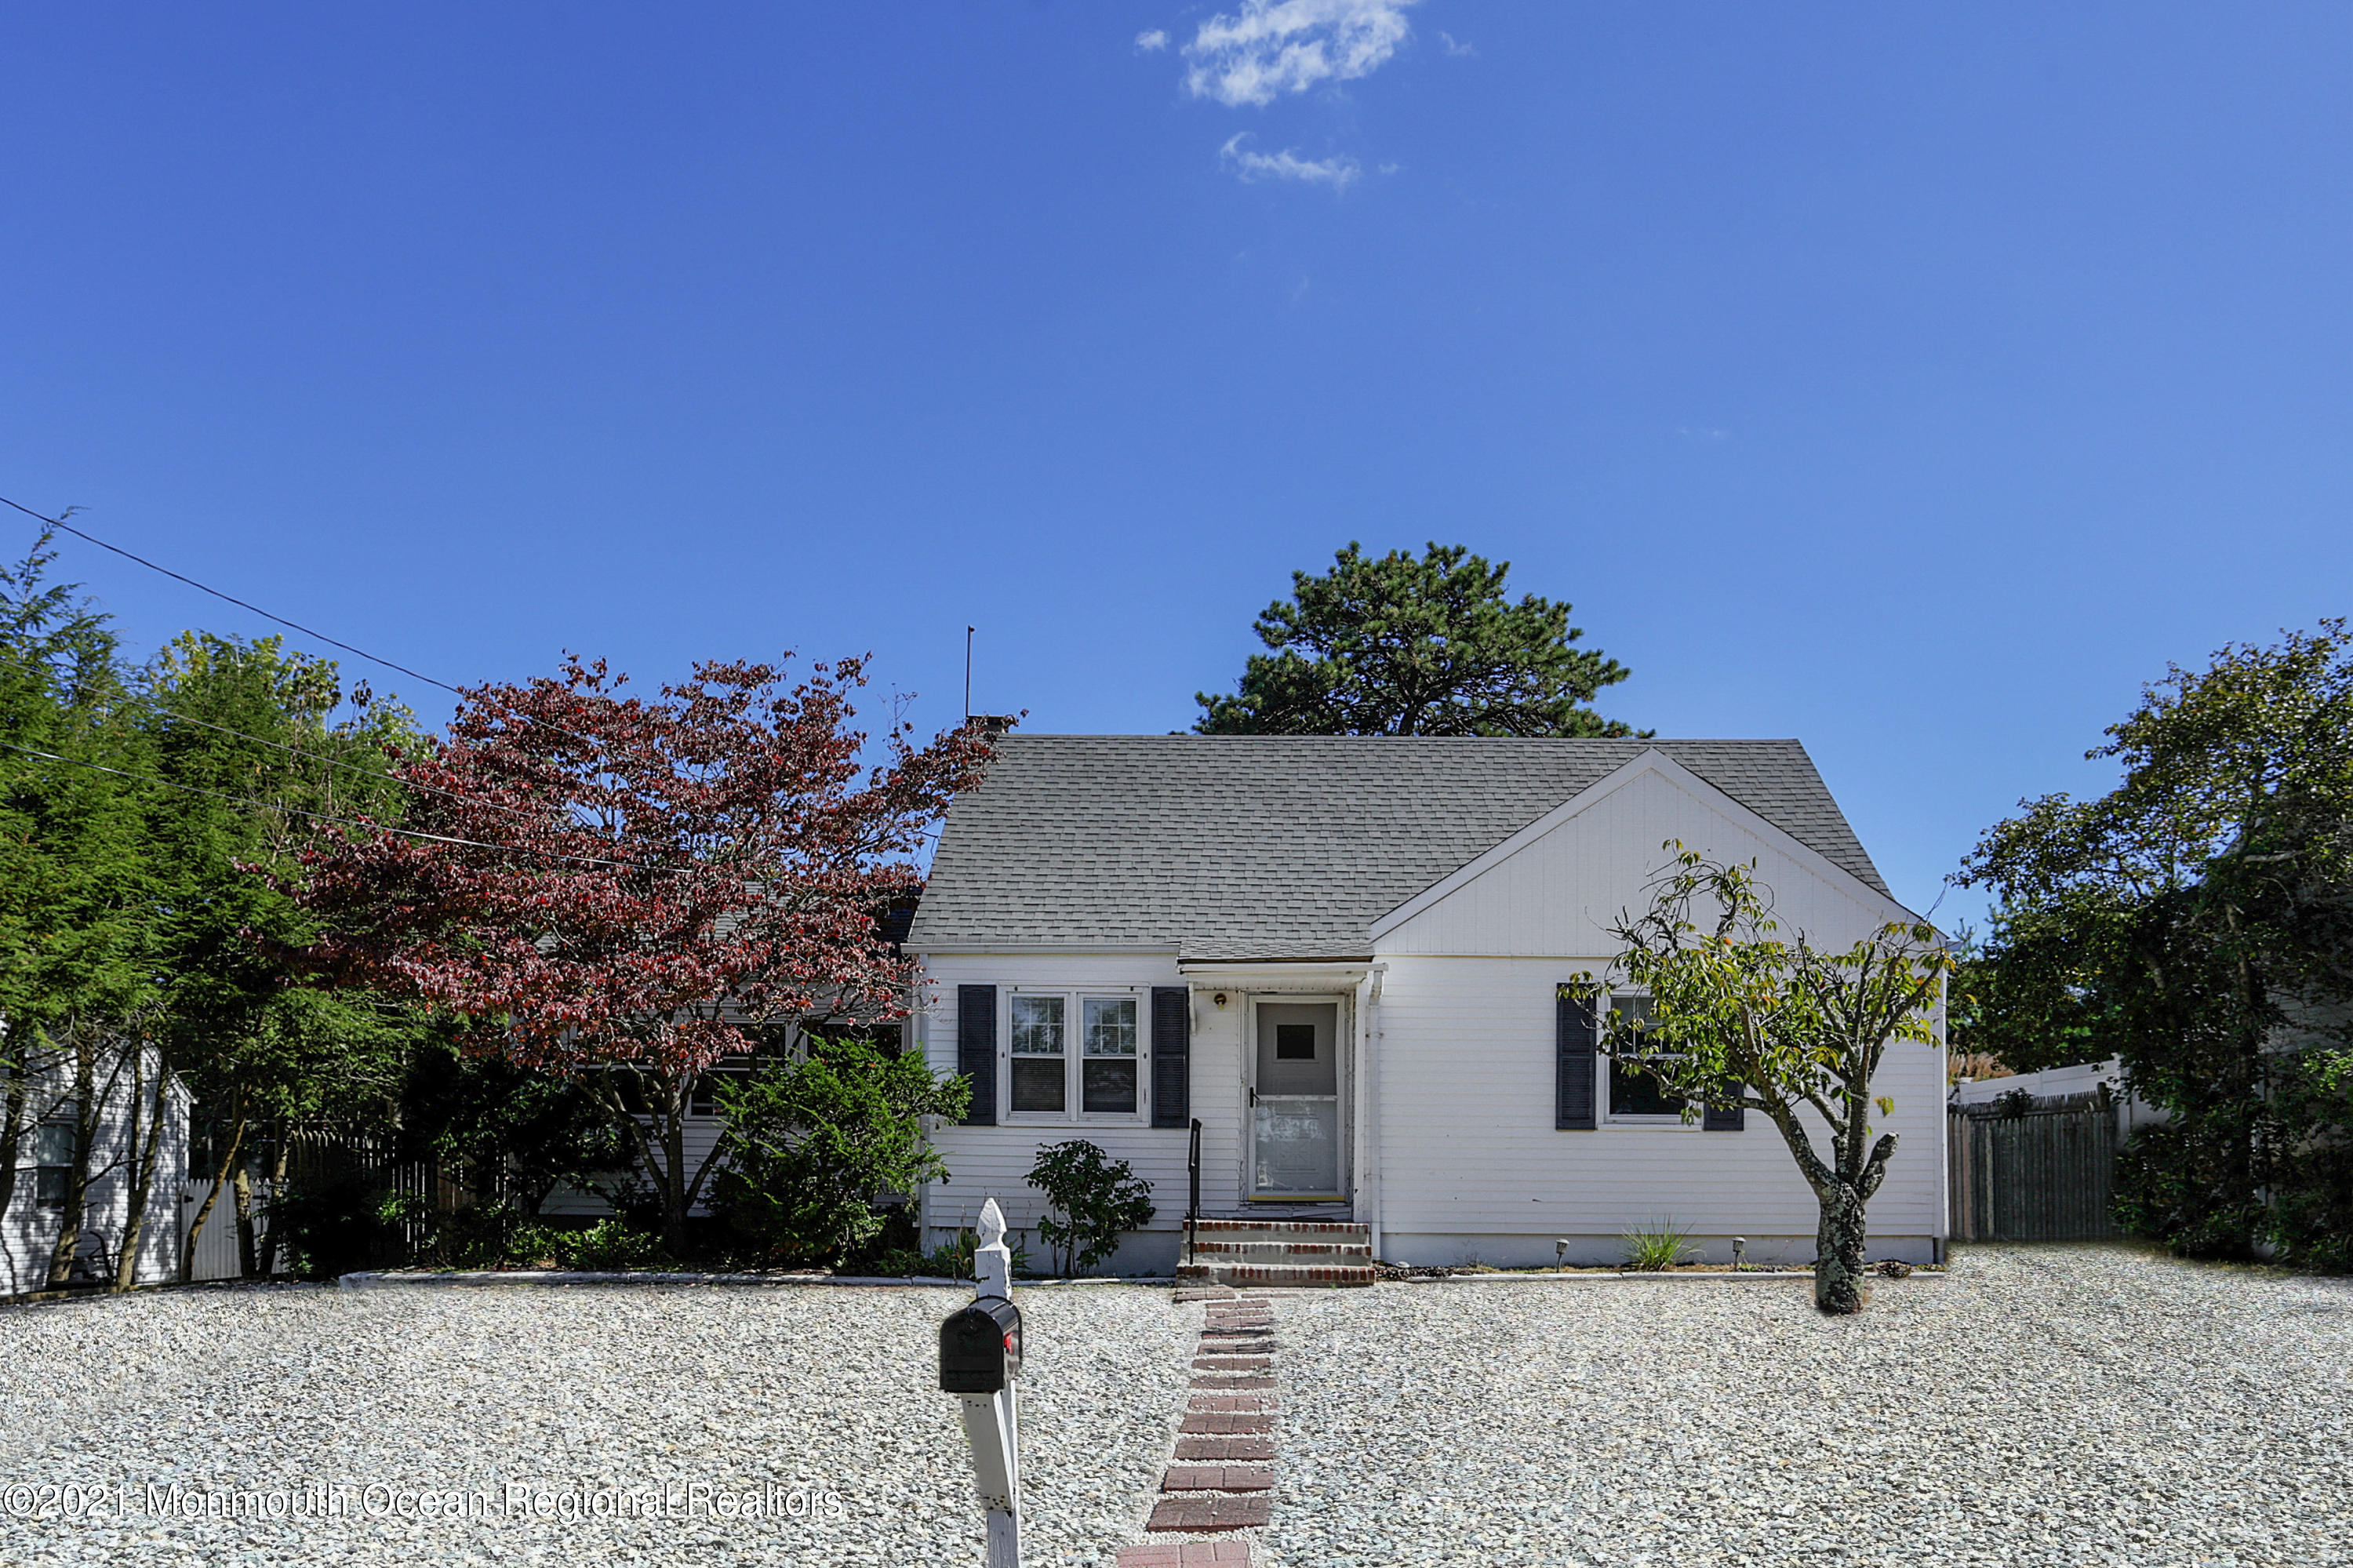 532 Smith Drive, Point Pleasant, New Jersey 08742, 2 Bedrooms Bedrooms, ,1 BathroomBathrooms,Single Family,For Sale,532 Smith Drive,1,22109201